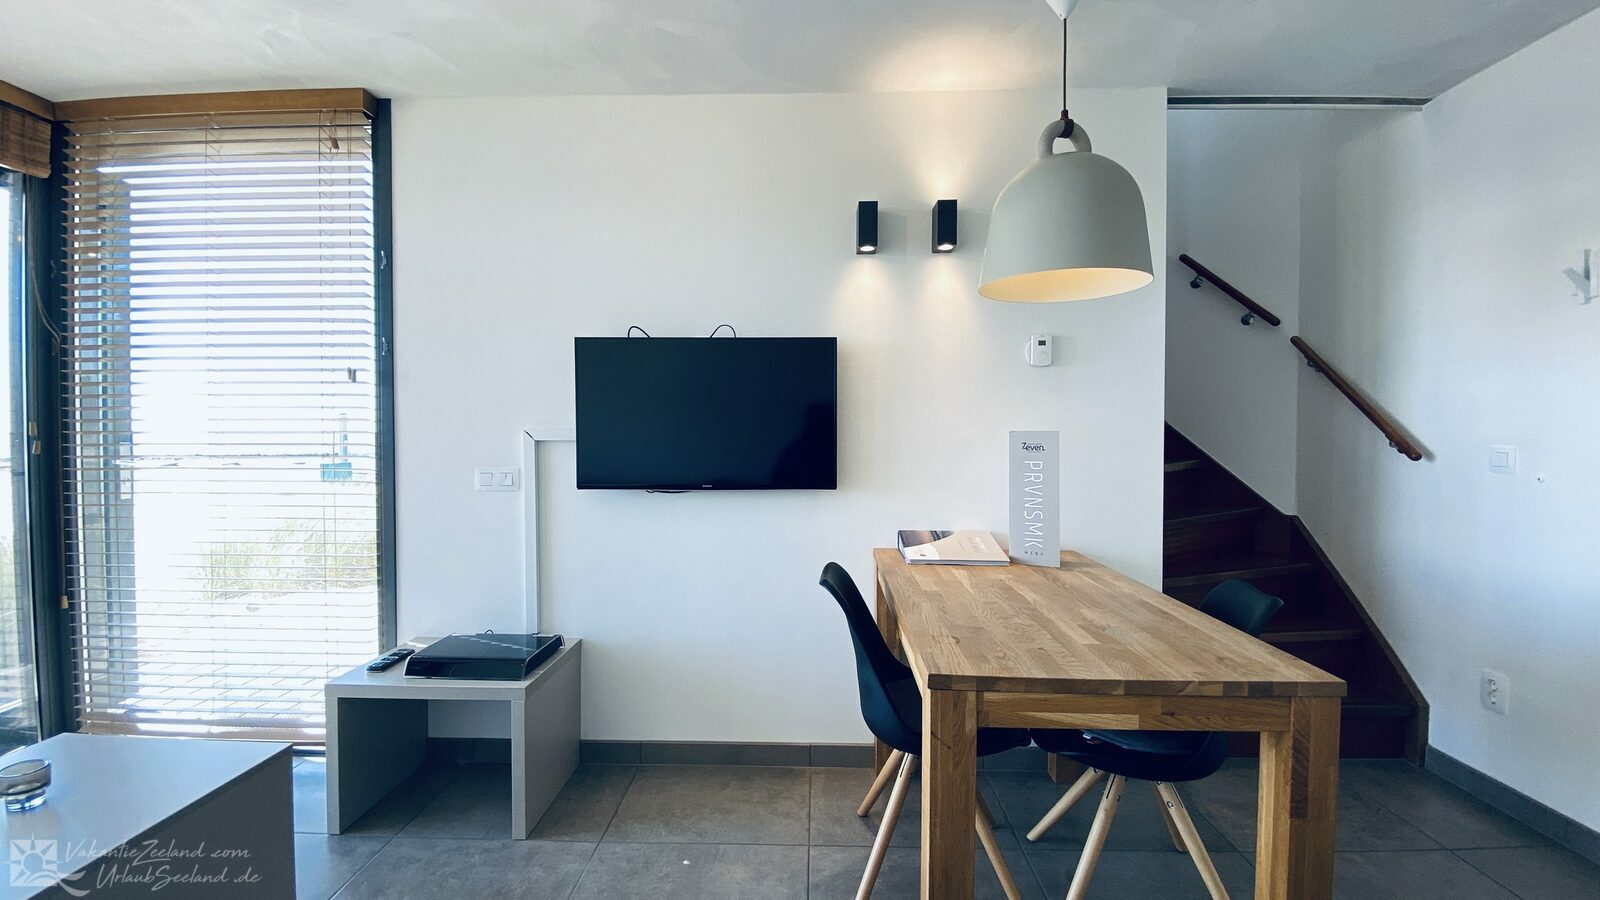 VZ802 Hotelstudio Waterfront Ouddorp